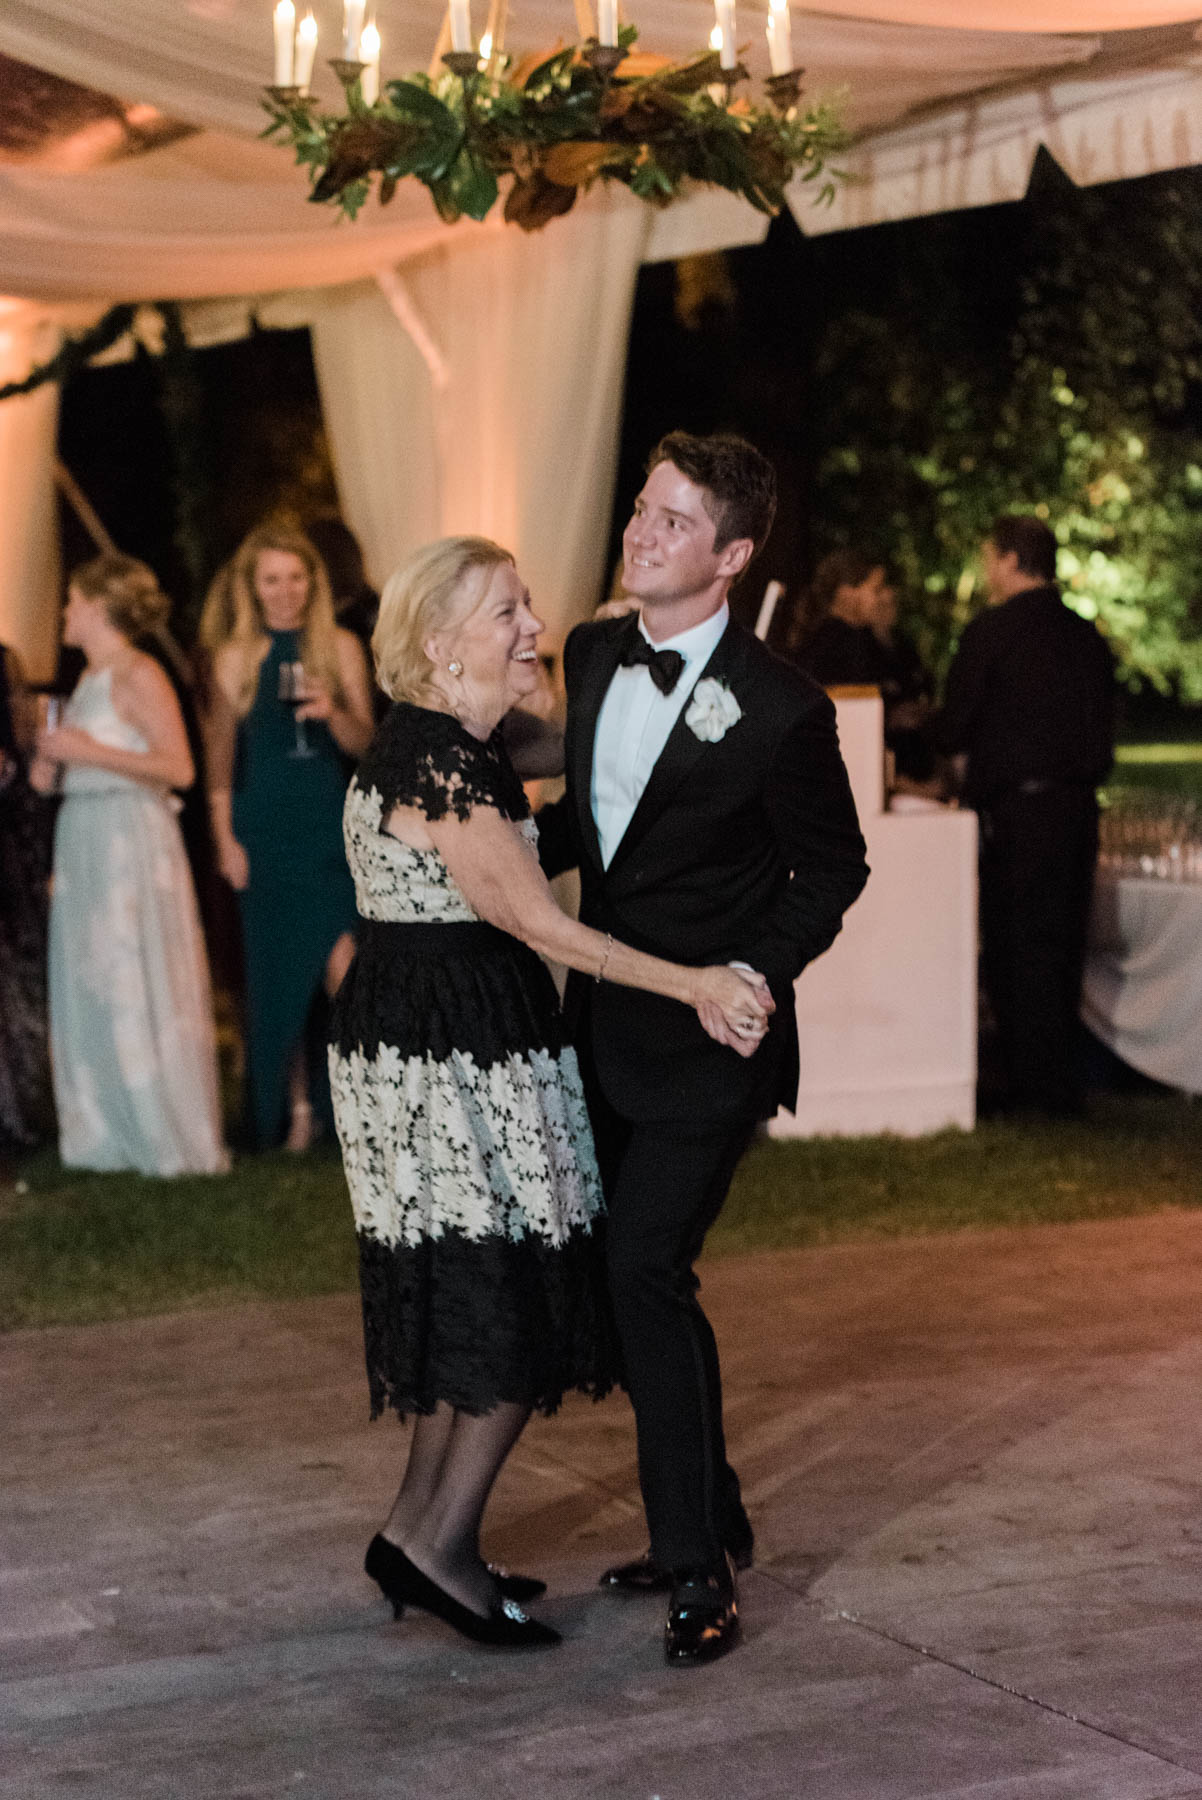 The best mother of the groom dance songs for weddings // Rhyme & Reason